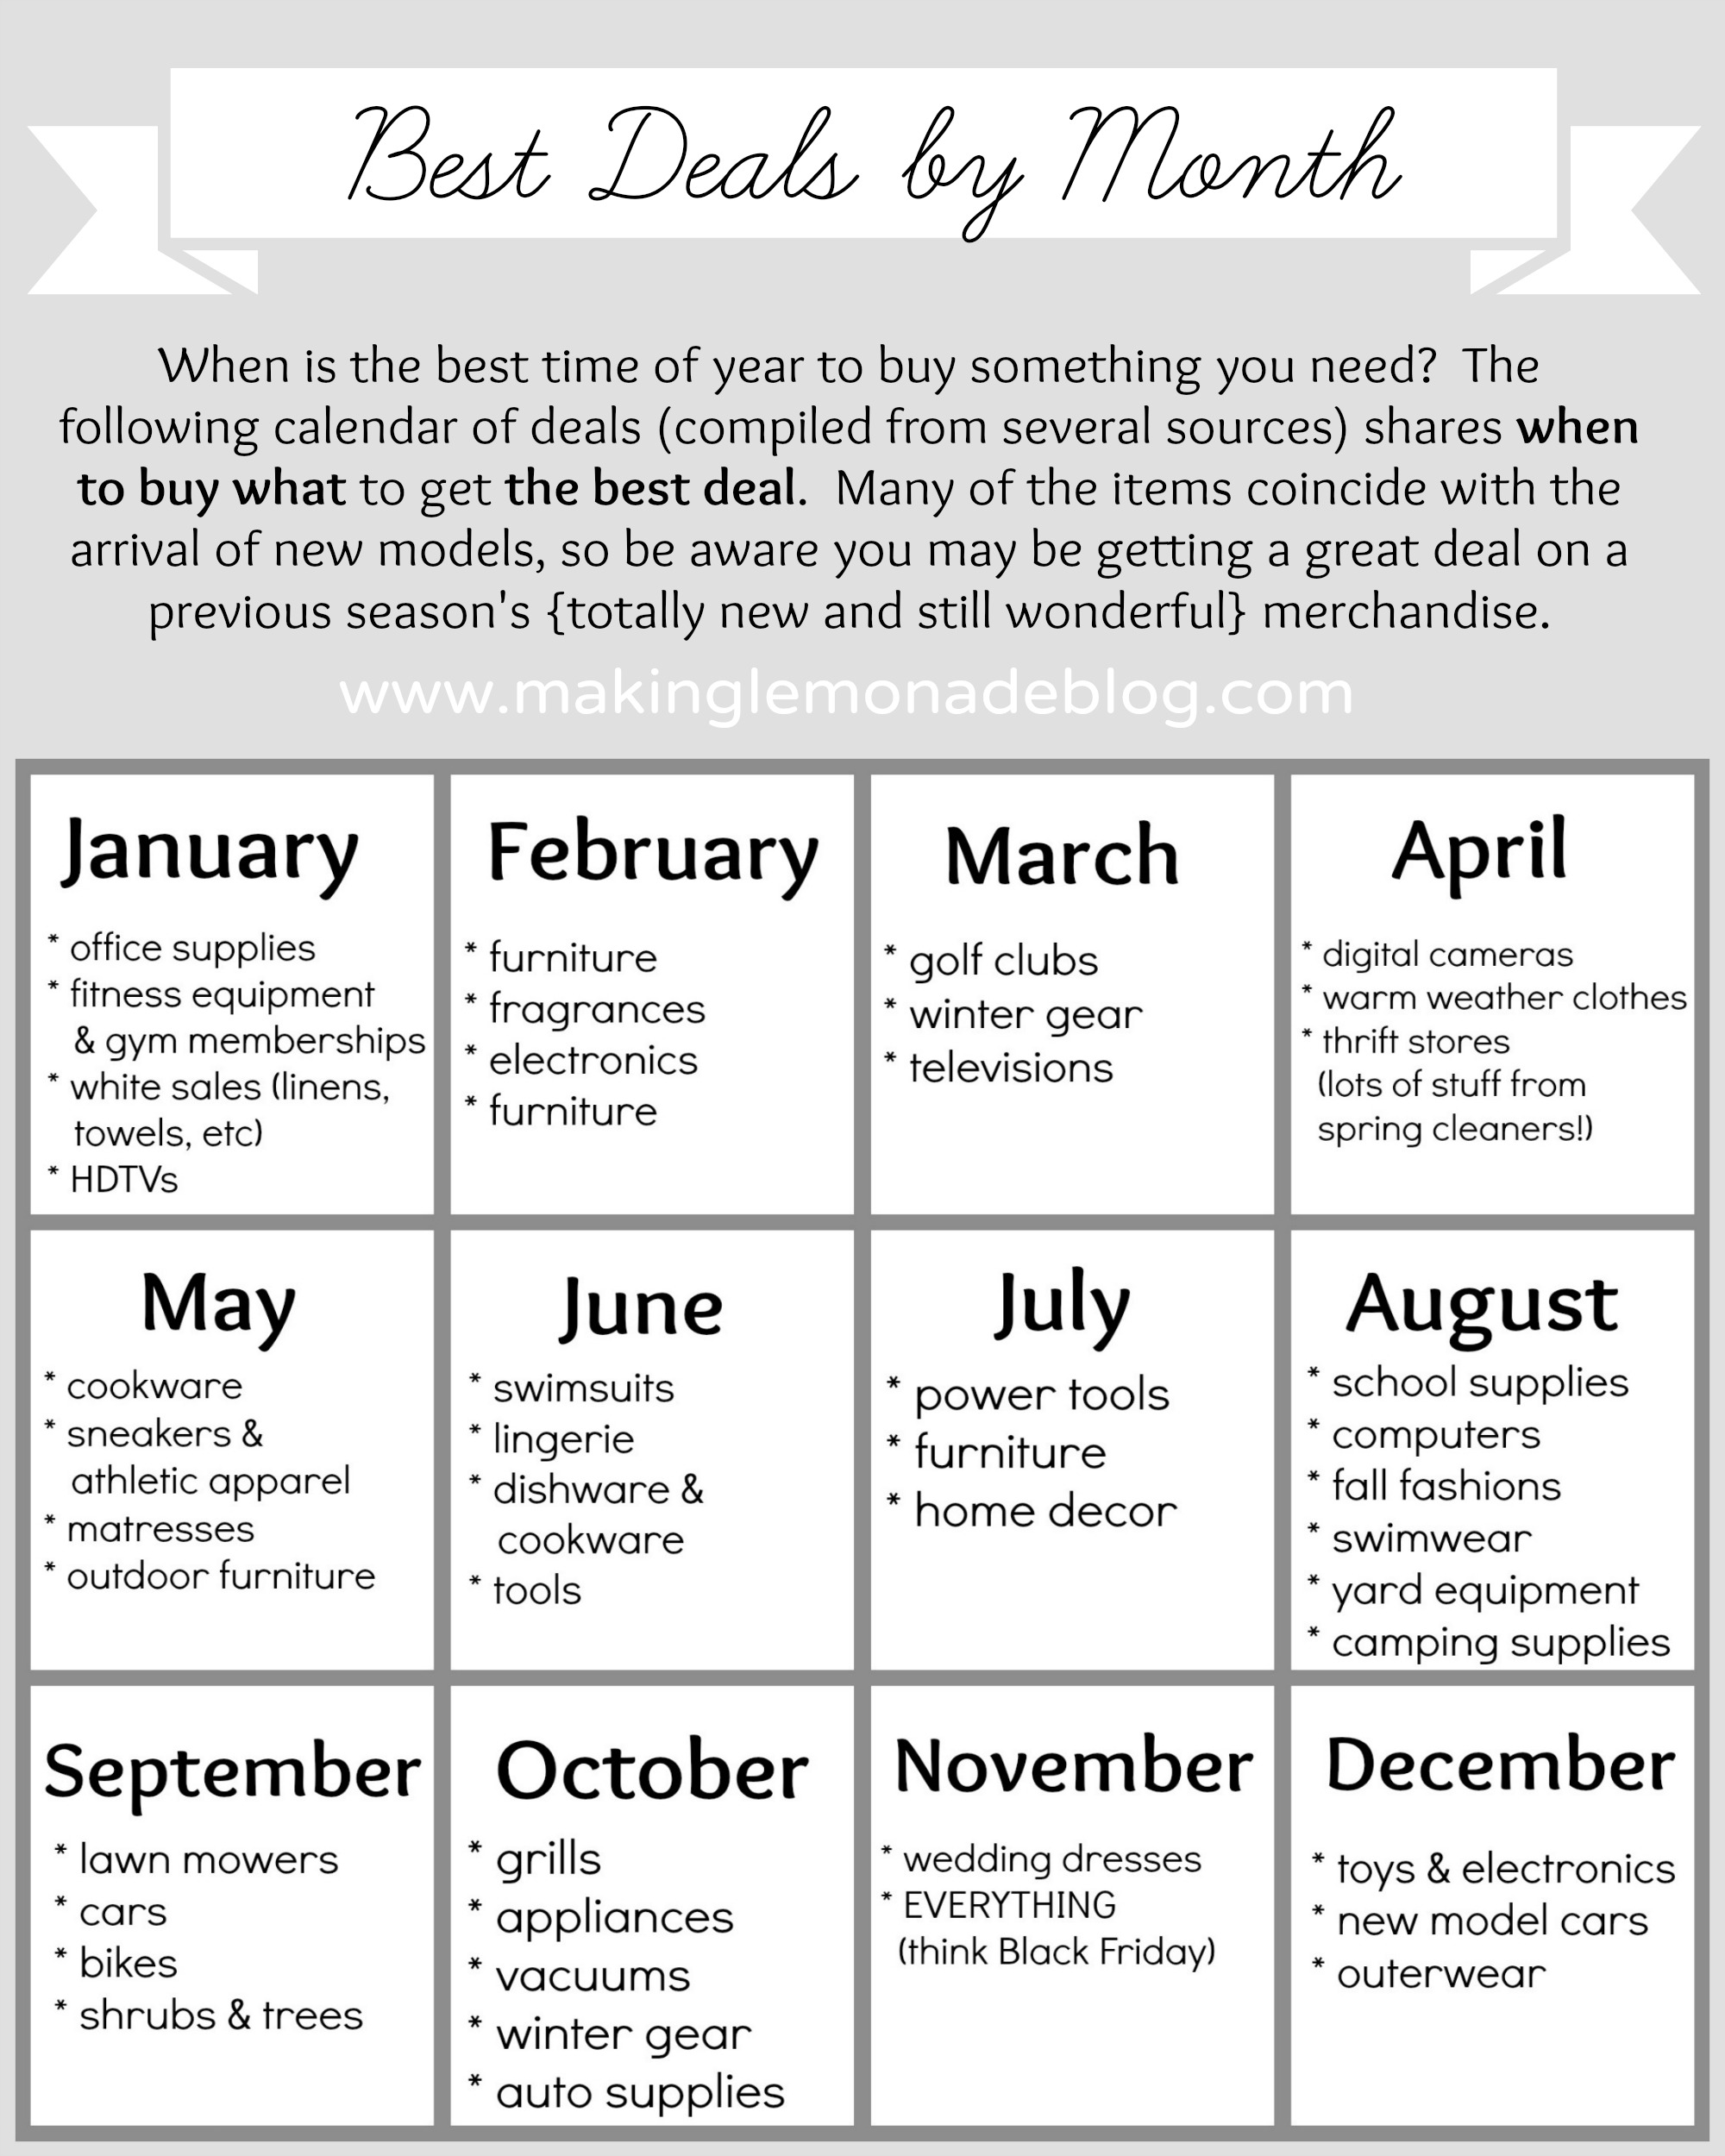 Best Deals by Month Calendar